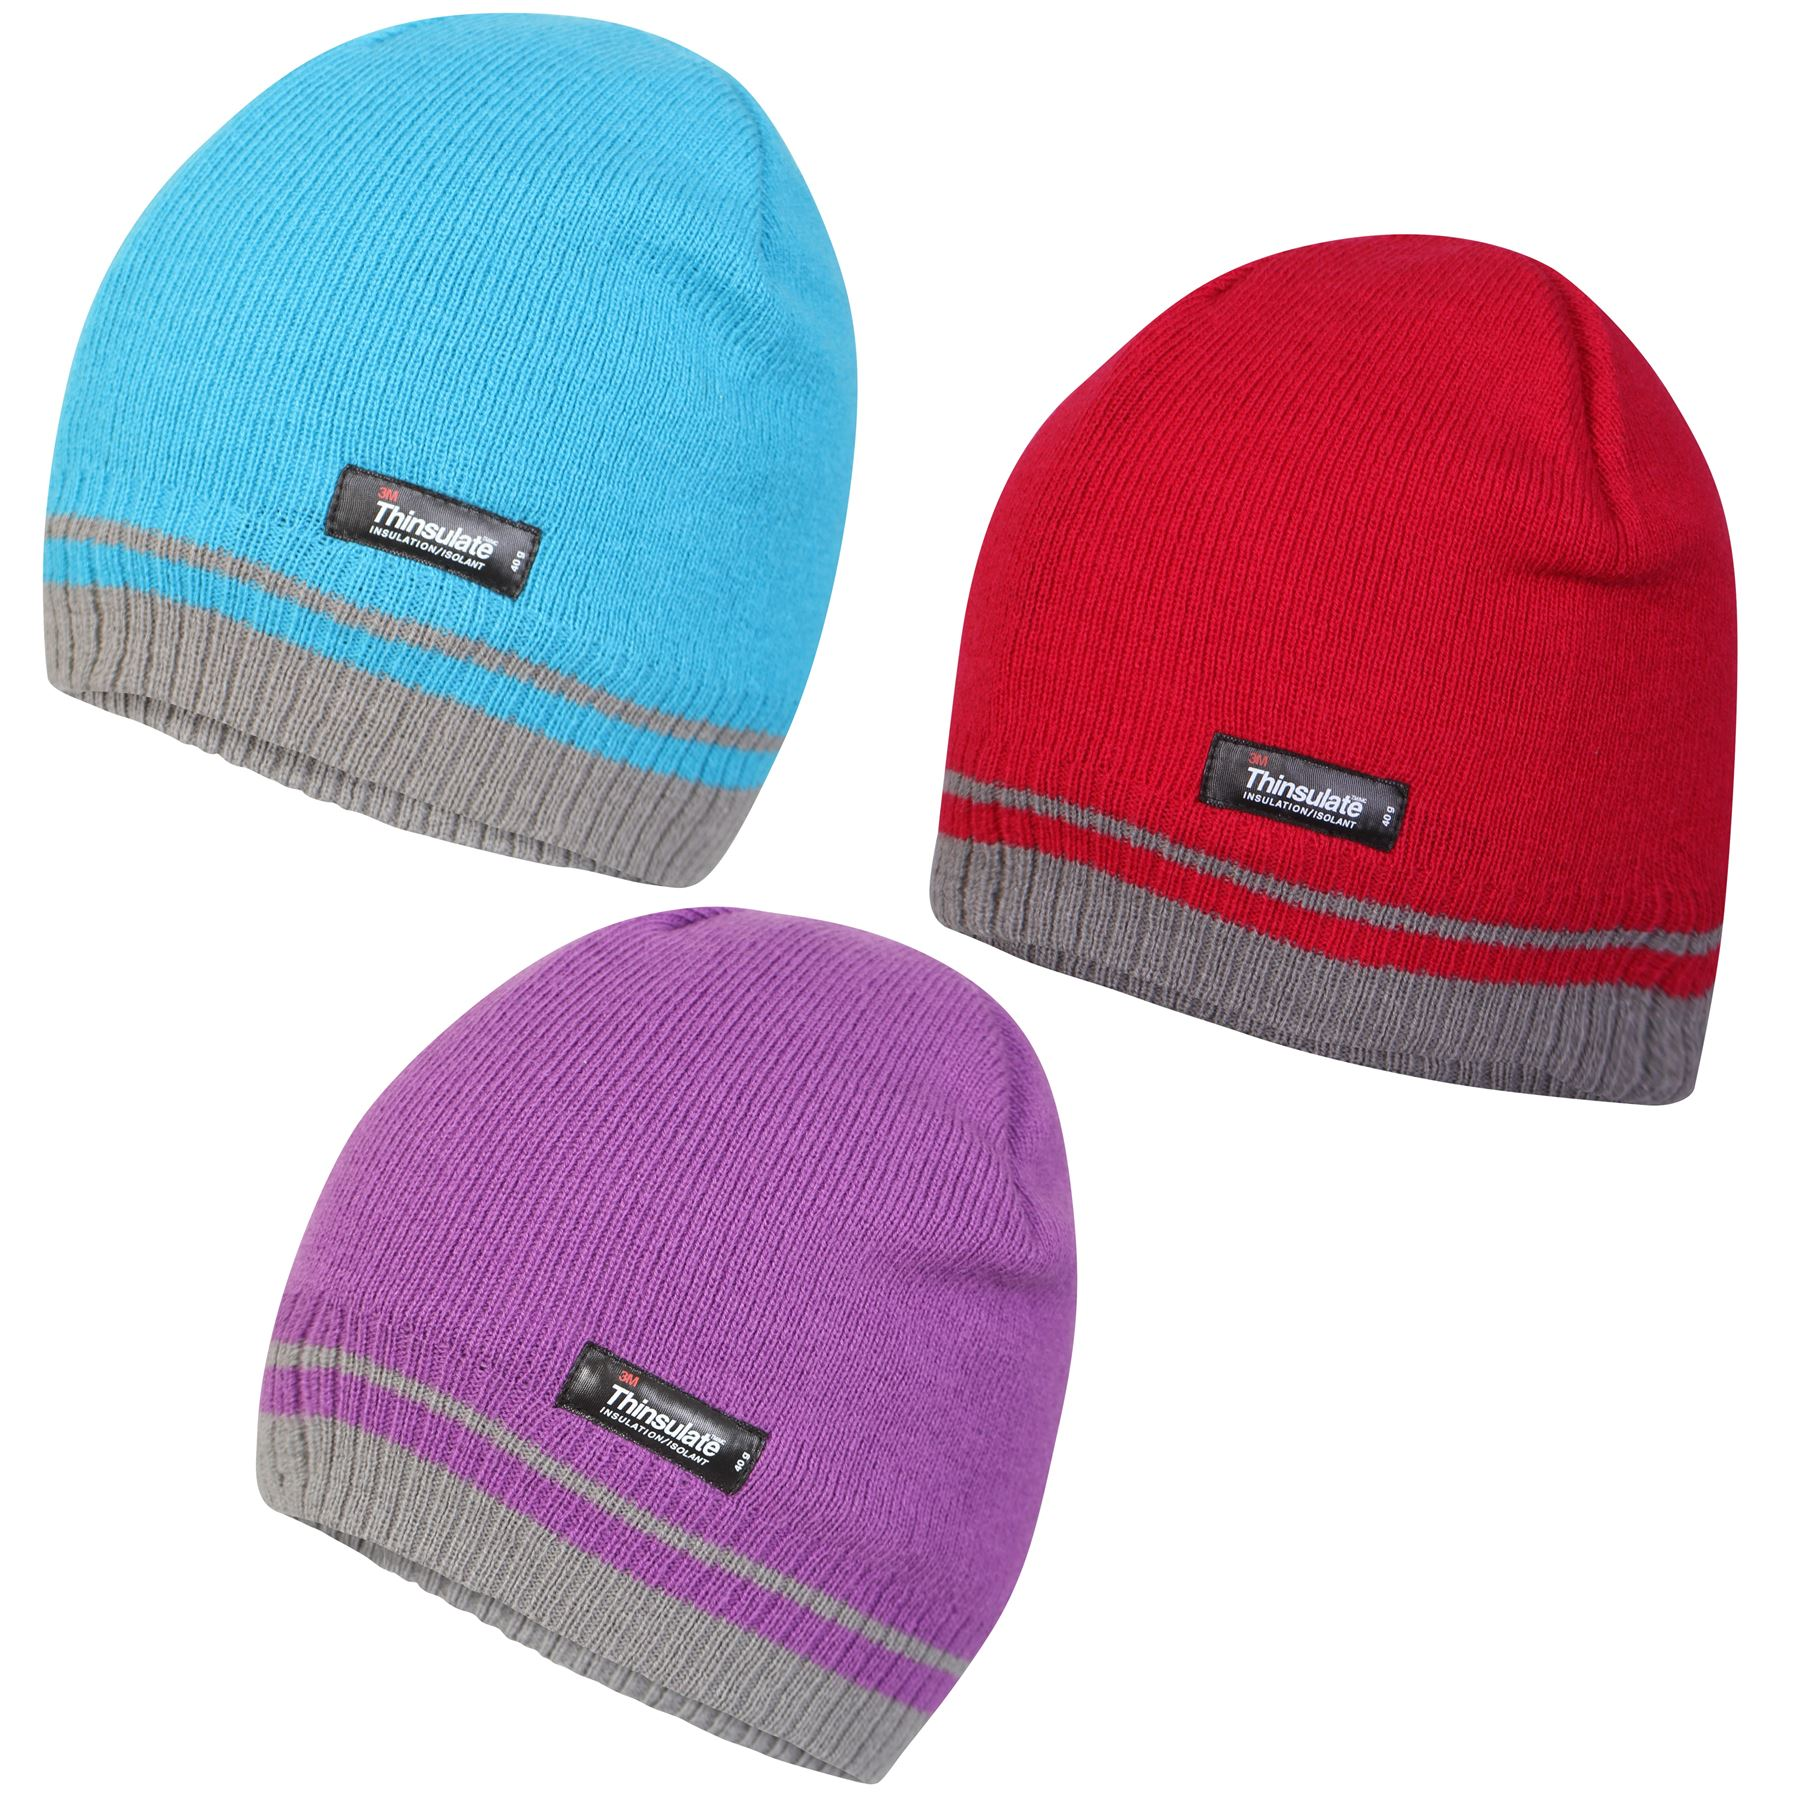 Details about Pro Climate Womens Hat Ladies Thinsulate Striped Beanie One  Size Fits All c002c38cad0